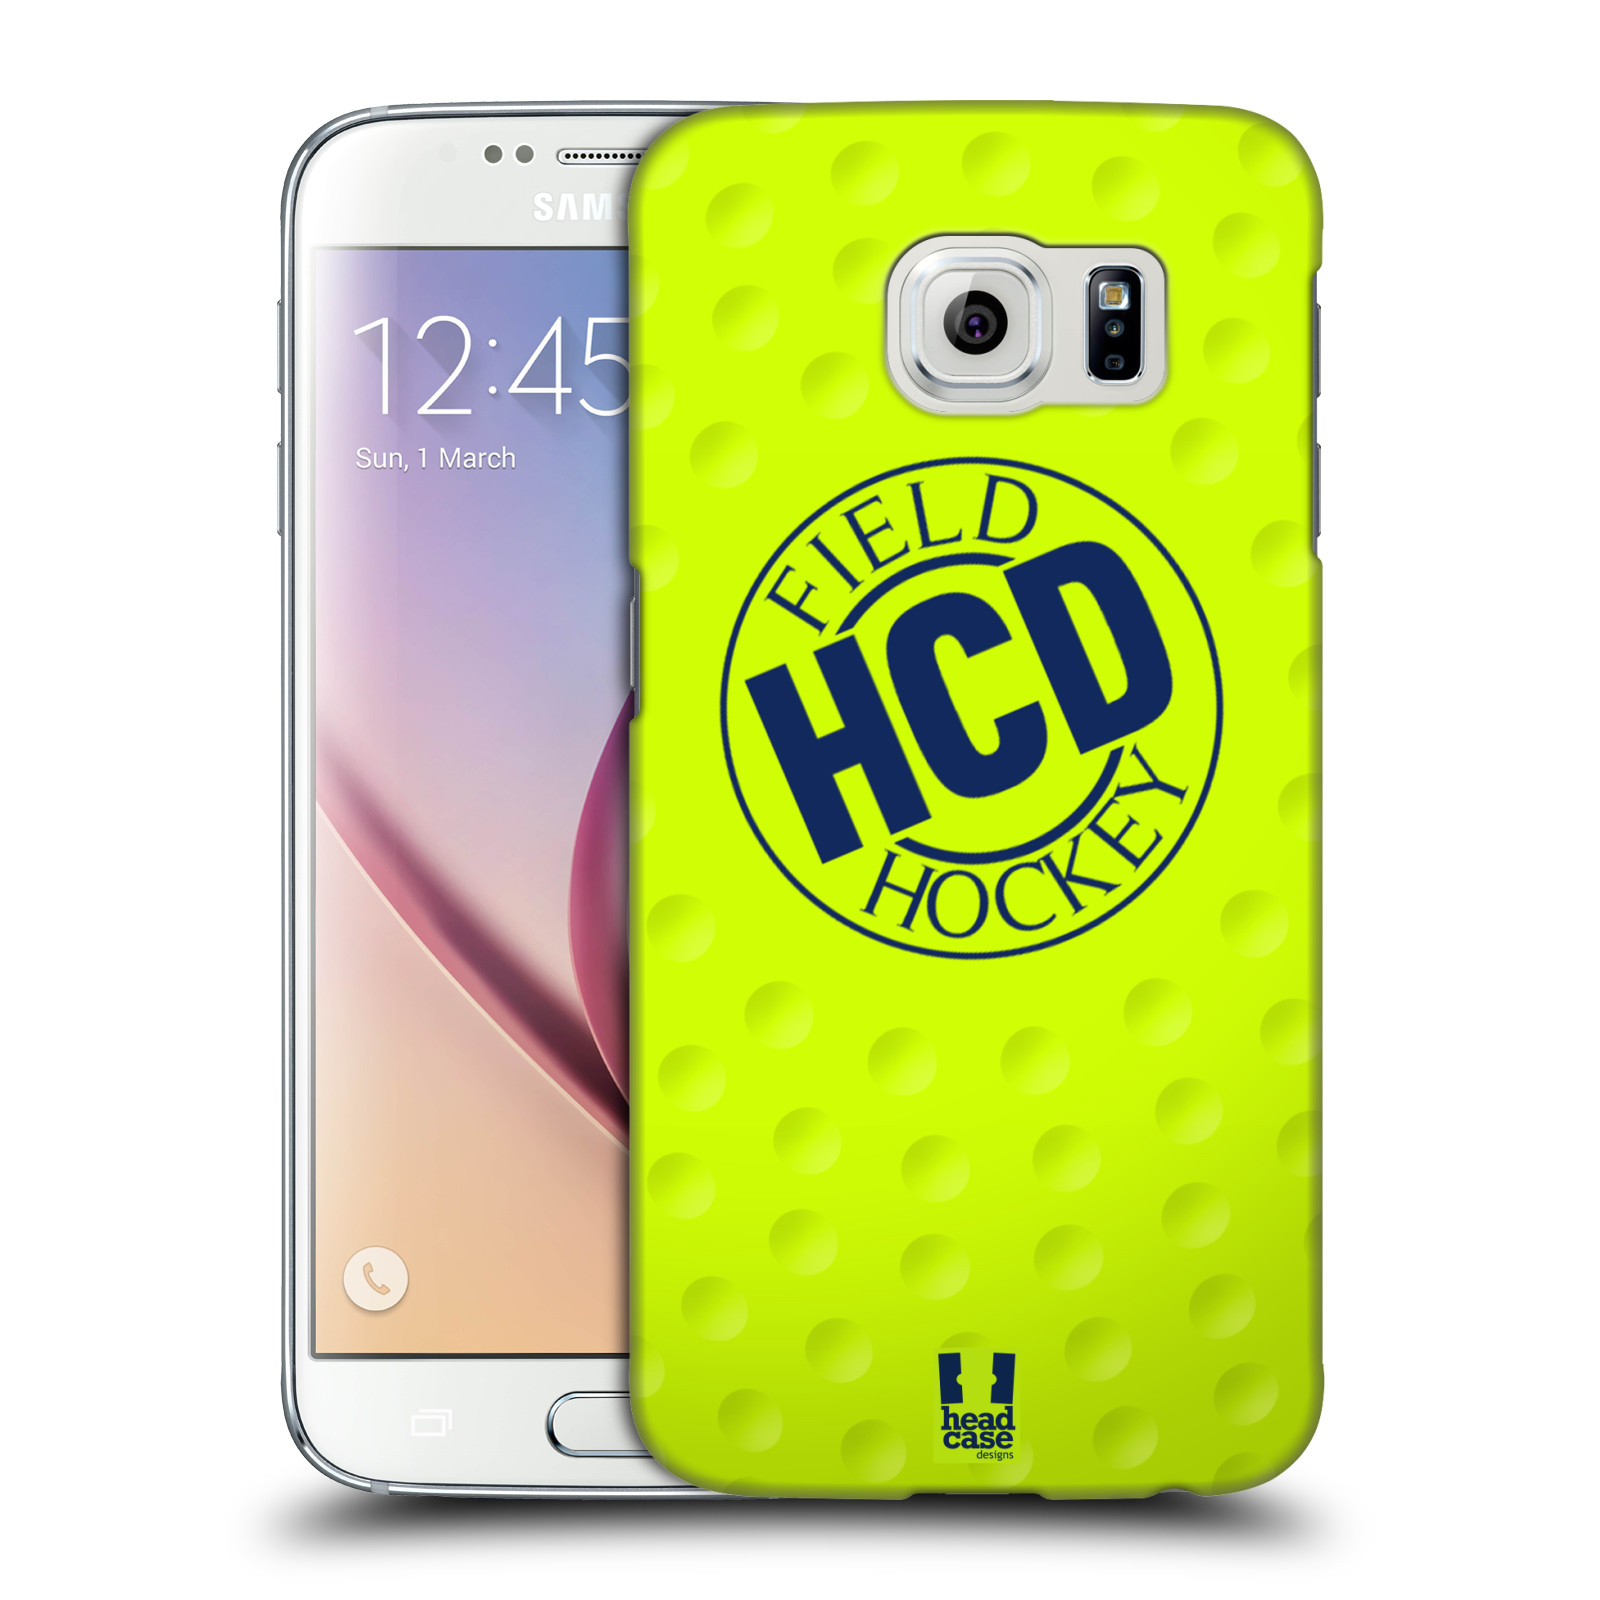 Samsung samsung galaxy legend phone cases : ... DESIGNS BALL COLLECTIONS 2 HARD BACK CASE FOR SAMSUNG PHONES 1 : eBay